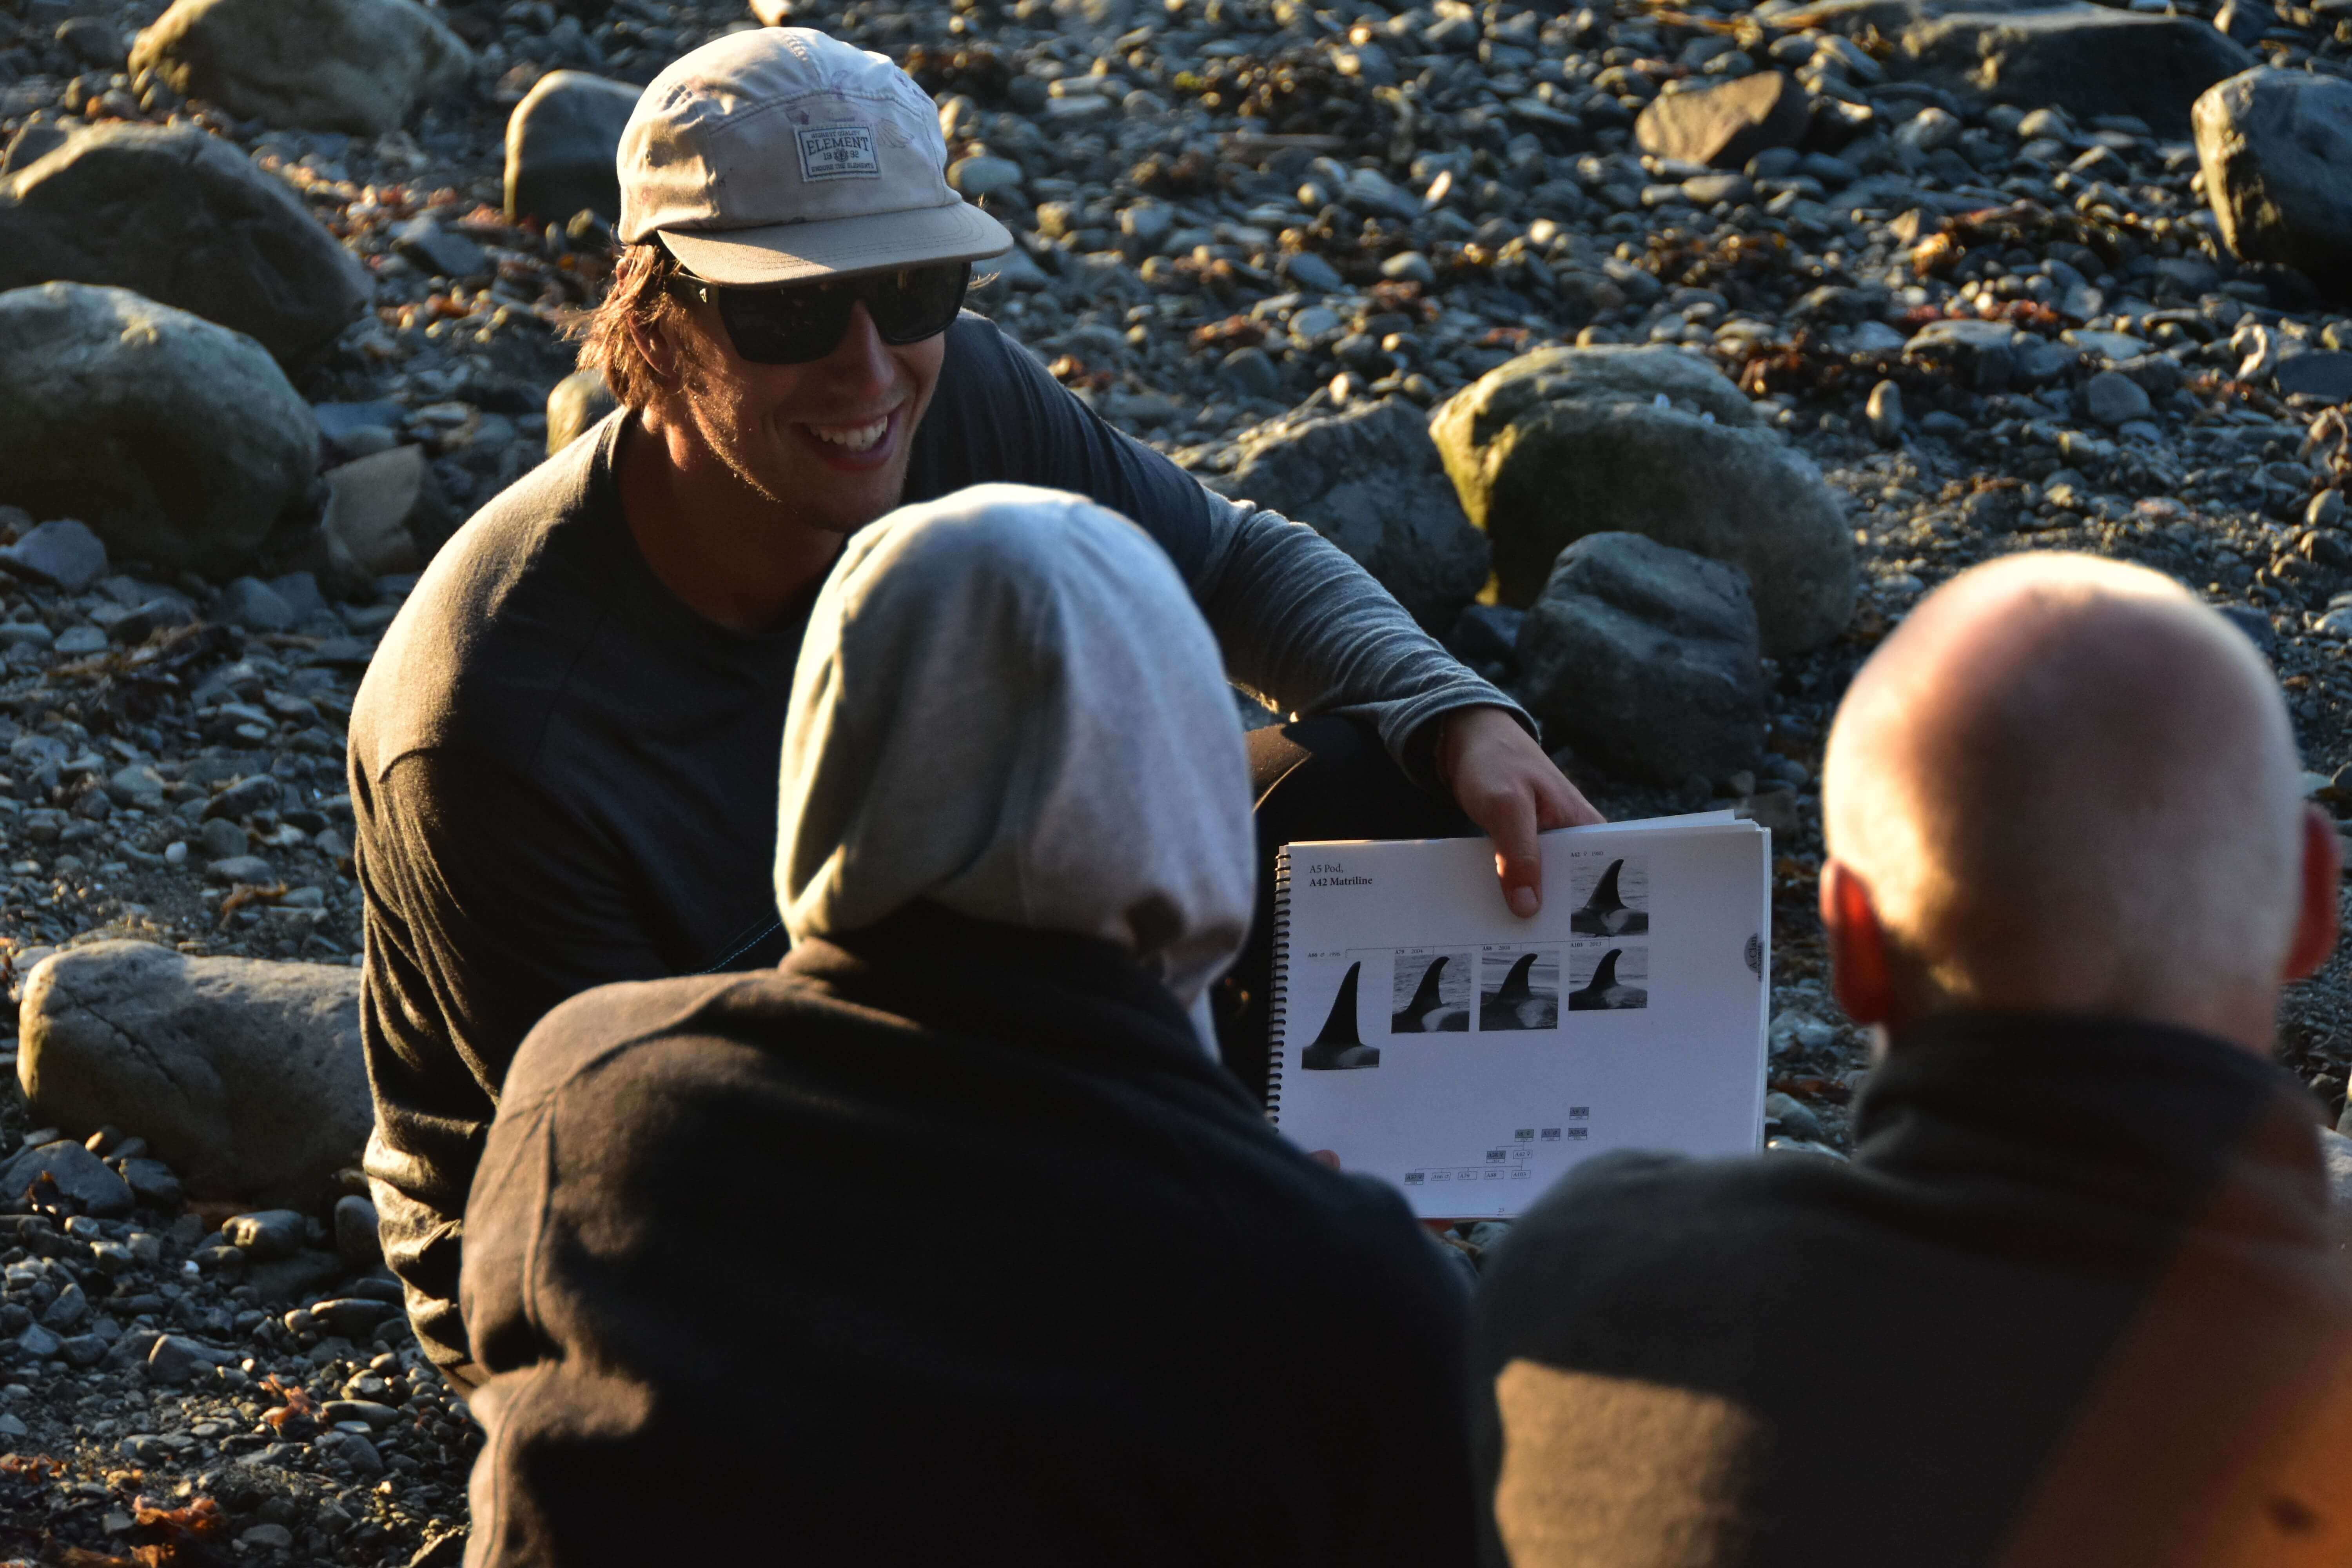 identifying orcas by dorsal fins